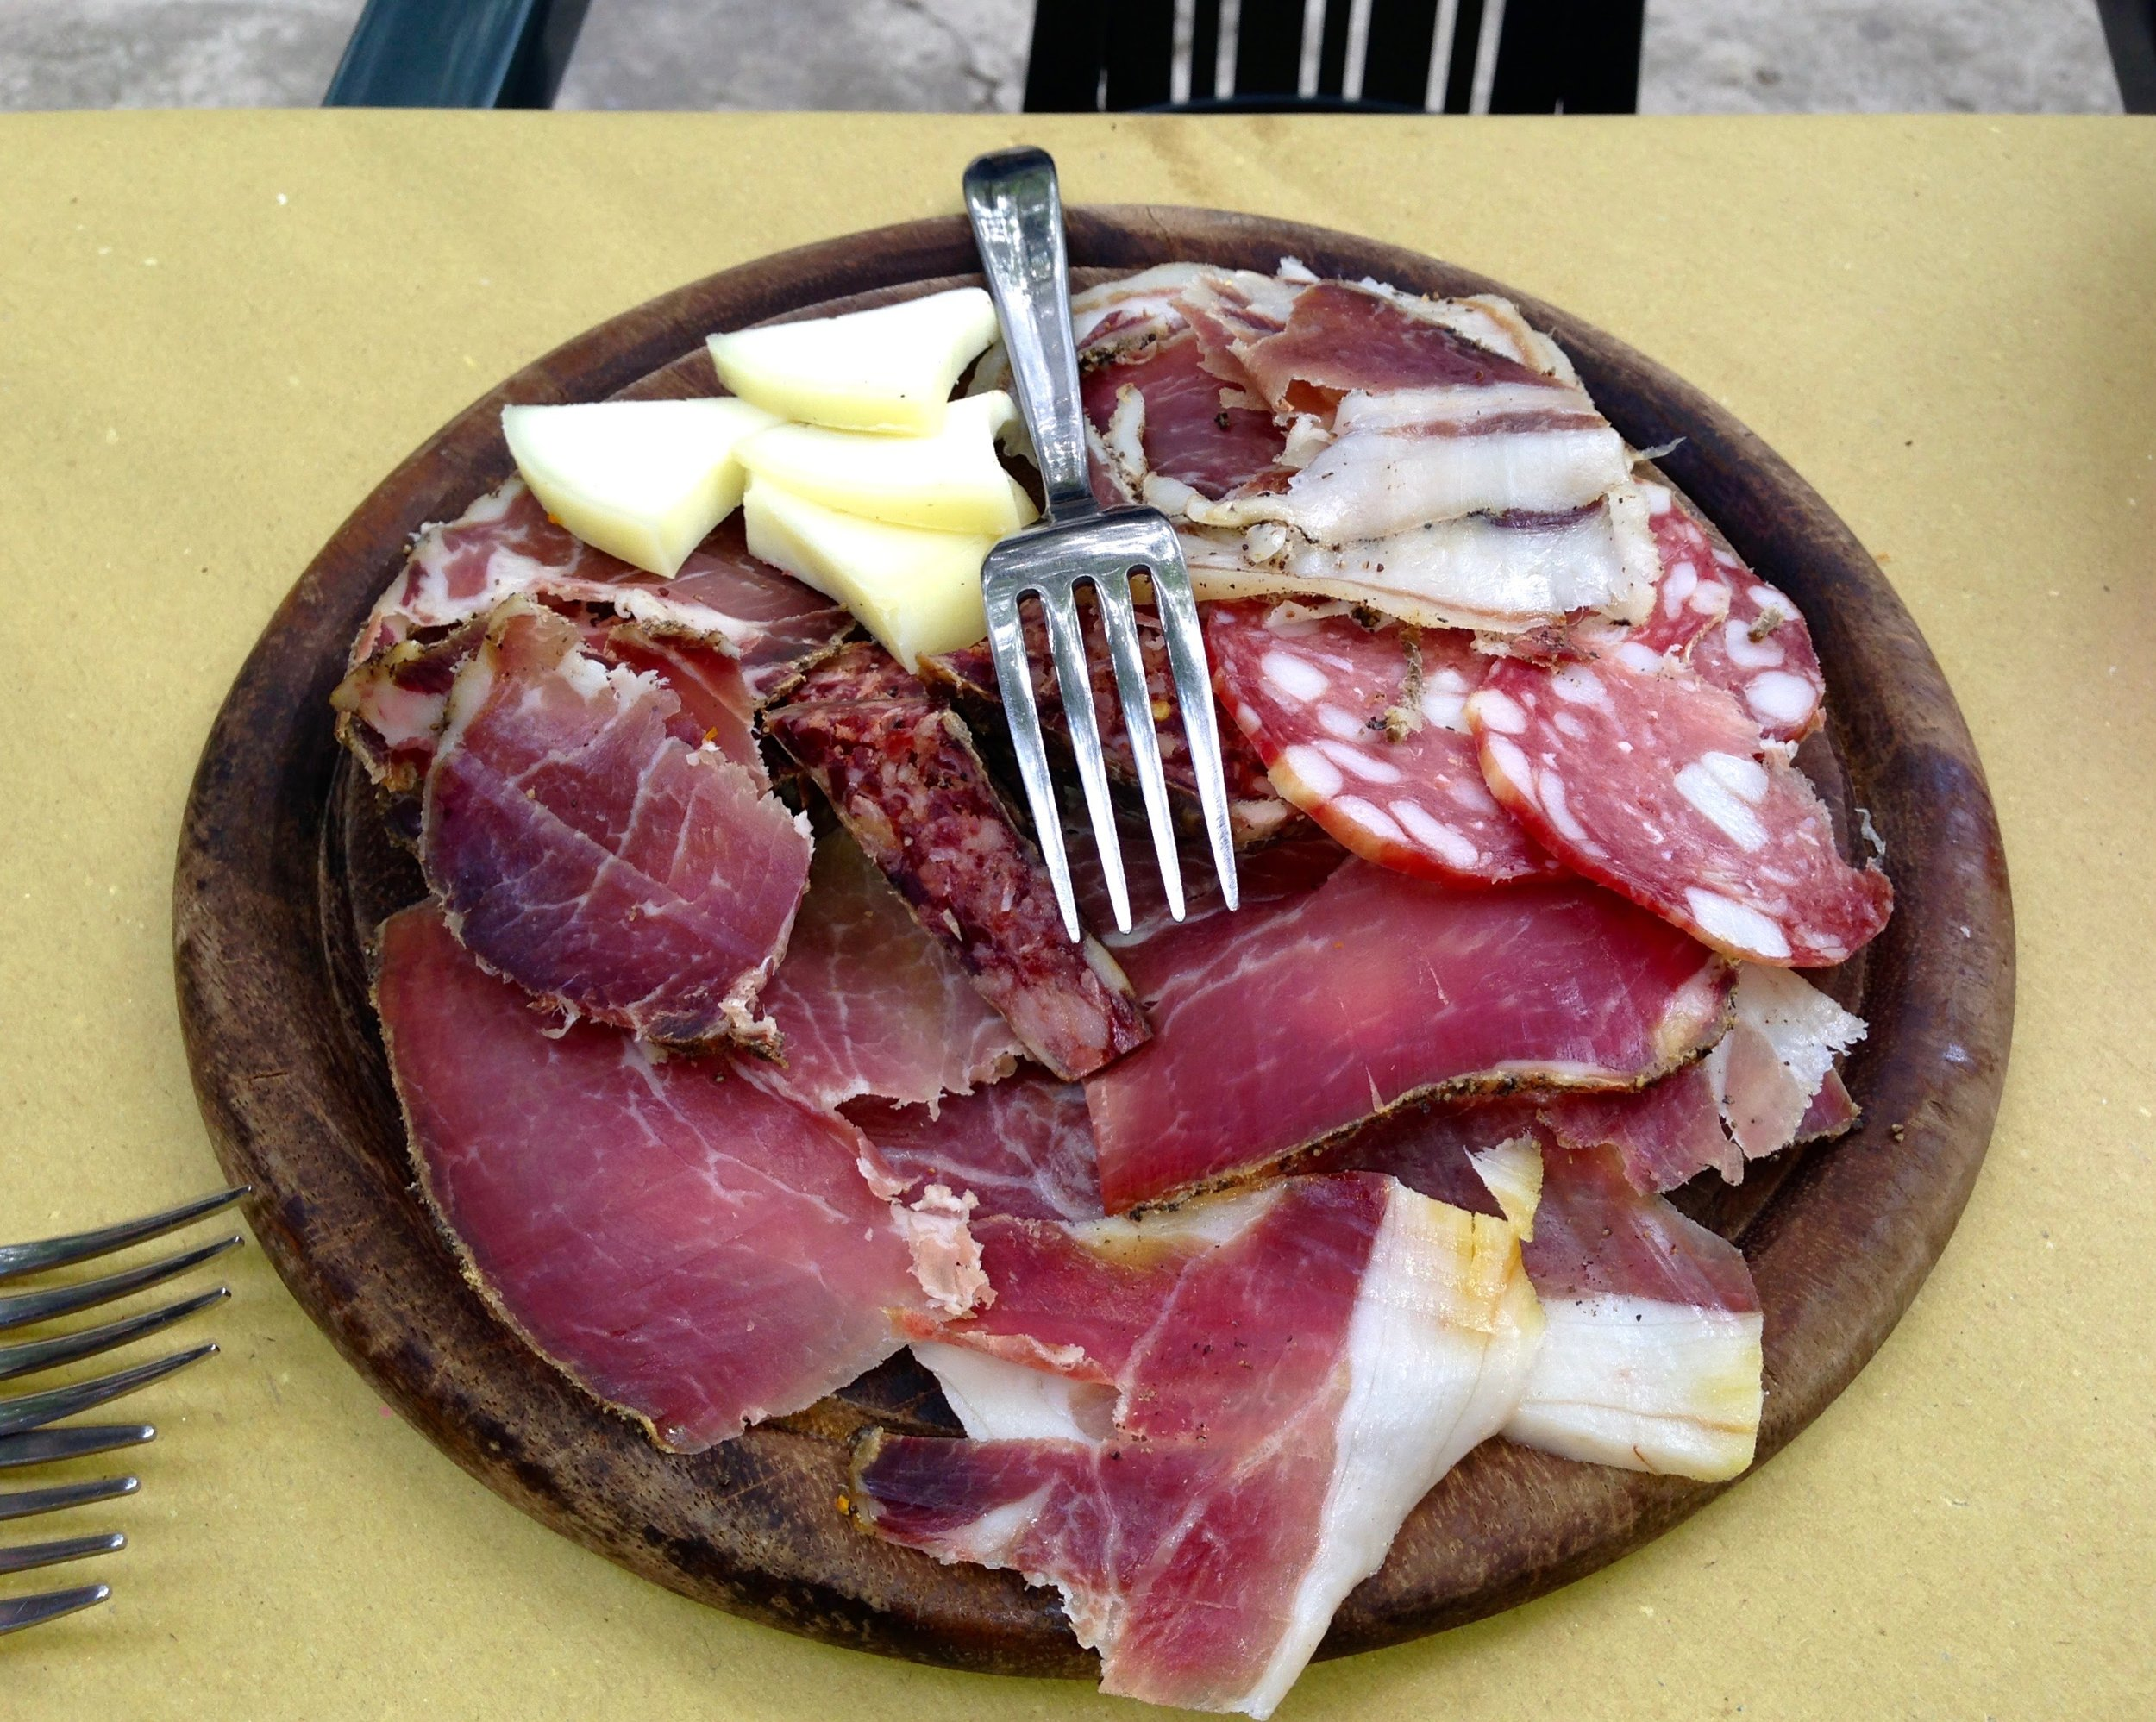 Antipasto at a nearby restaurant